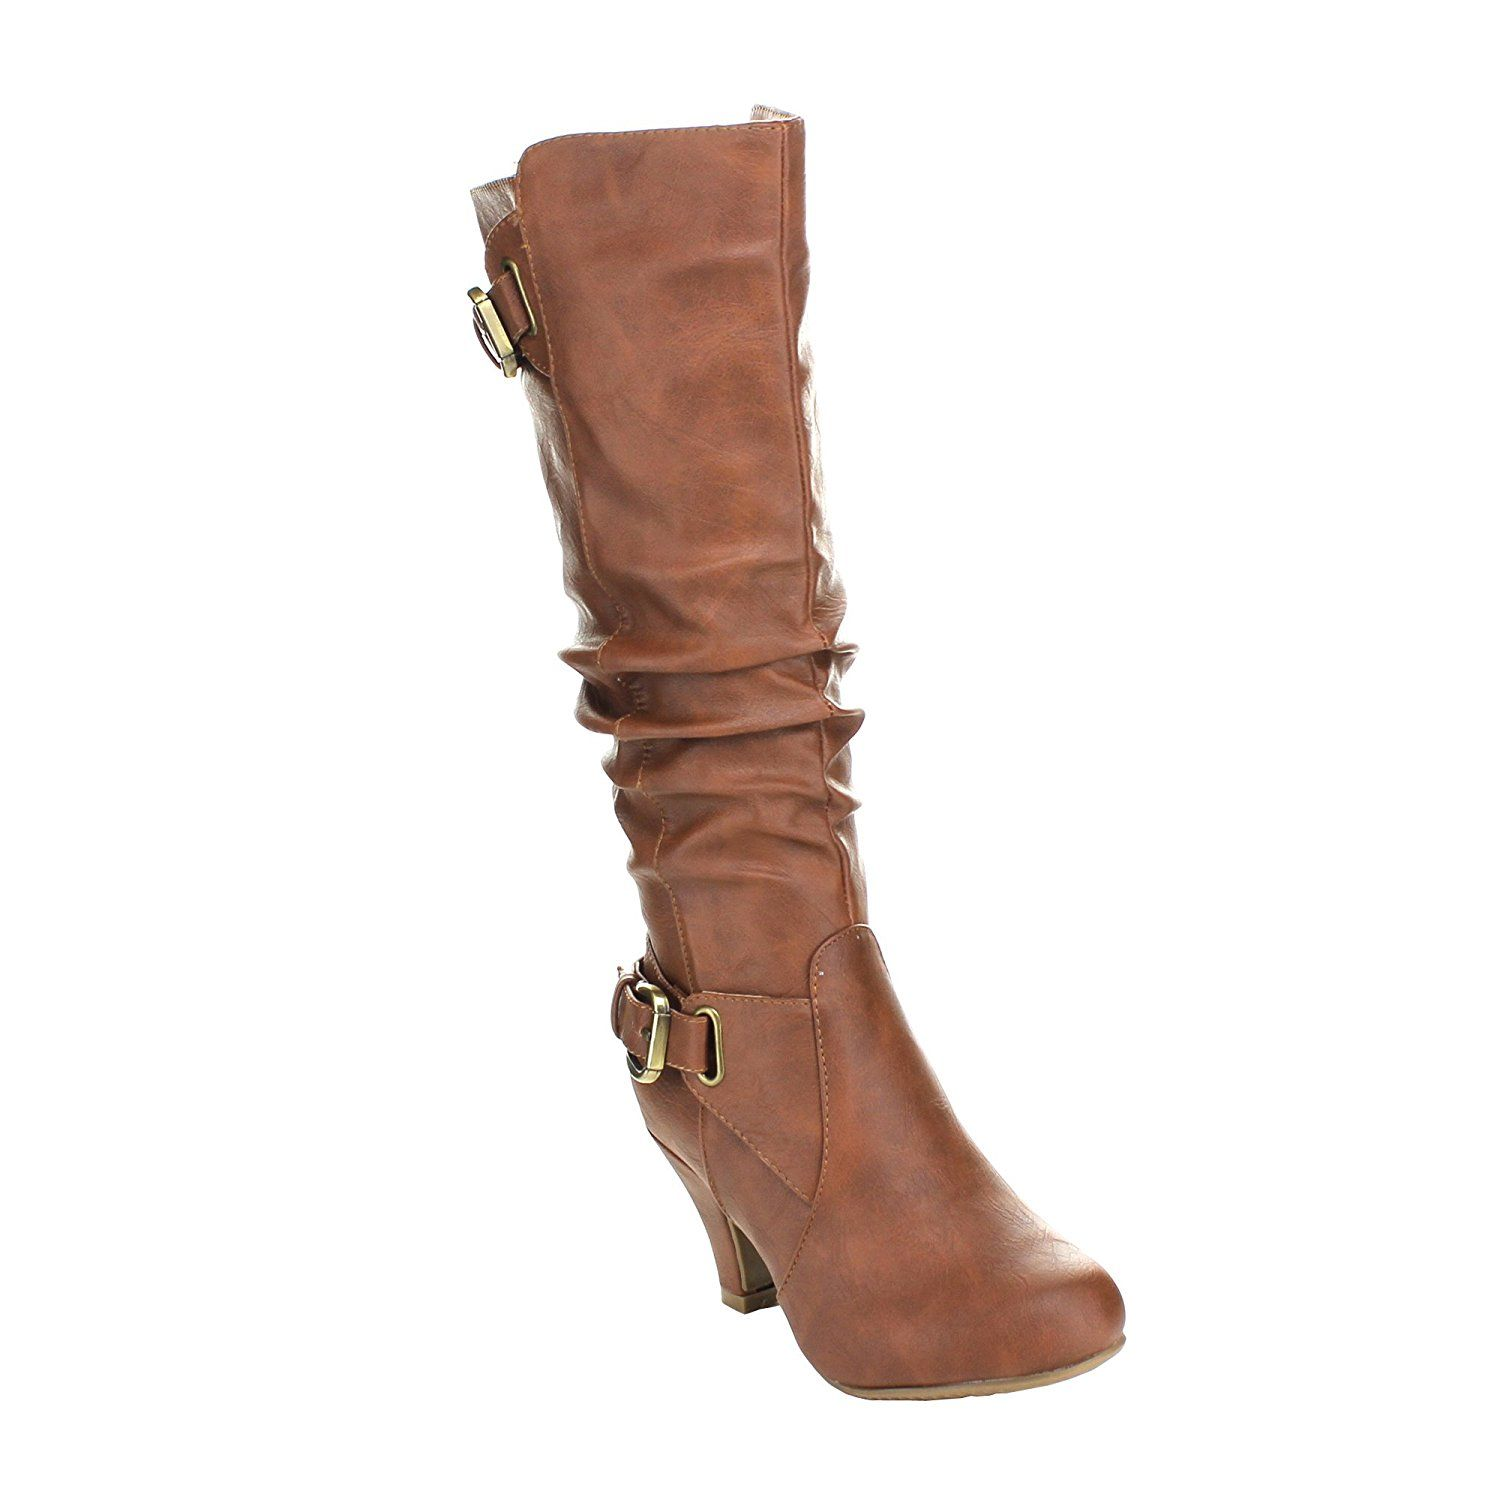 Top Moda Womens Bag-55 Knee High Buckle Slouched Kitten Heel Boots ** This is an Amazon Affiliate link. You can find more details by visiting the image link.